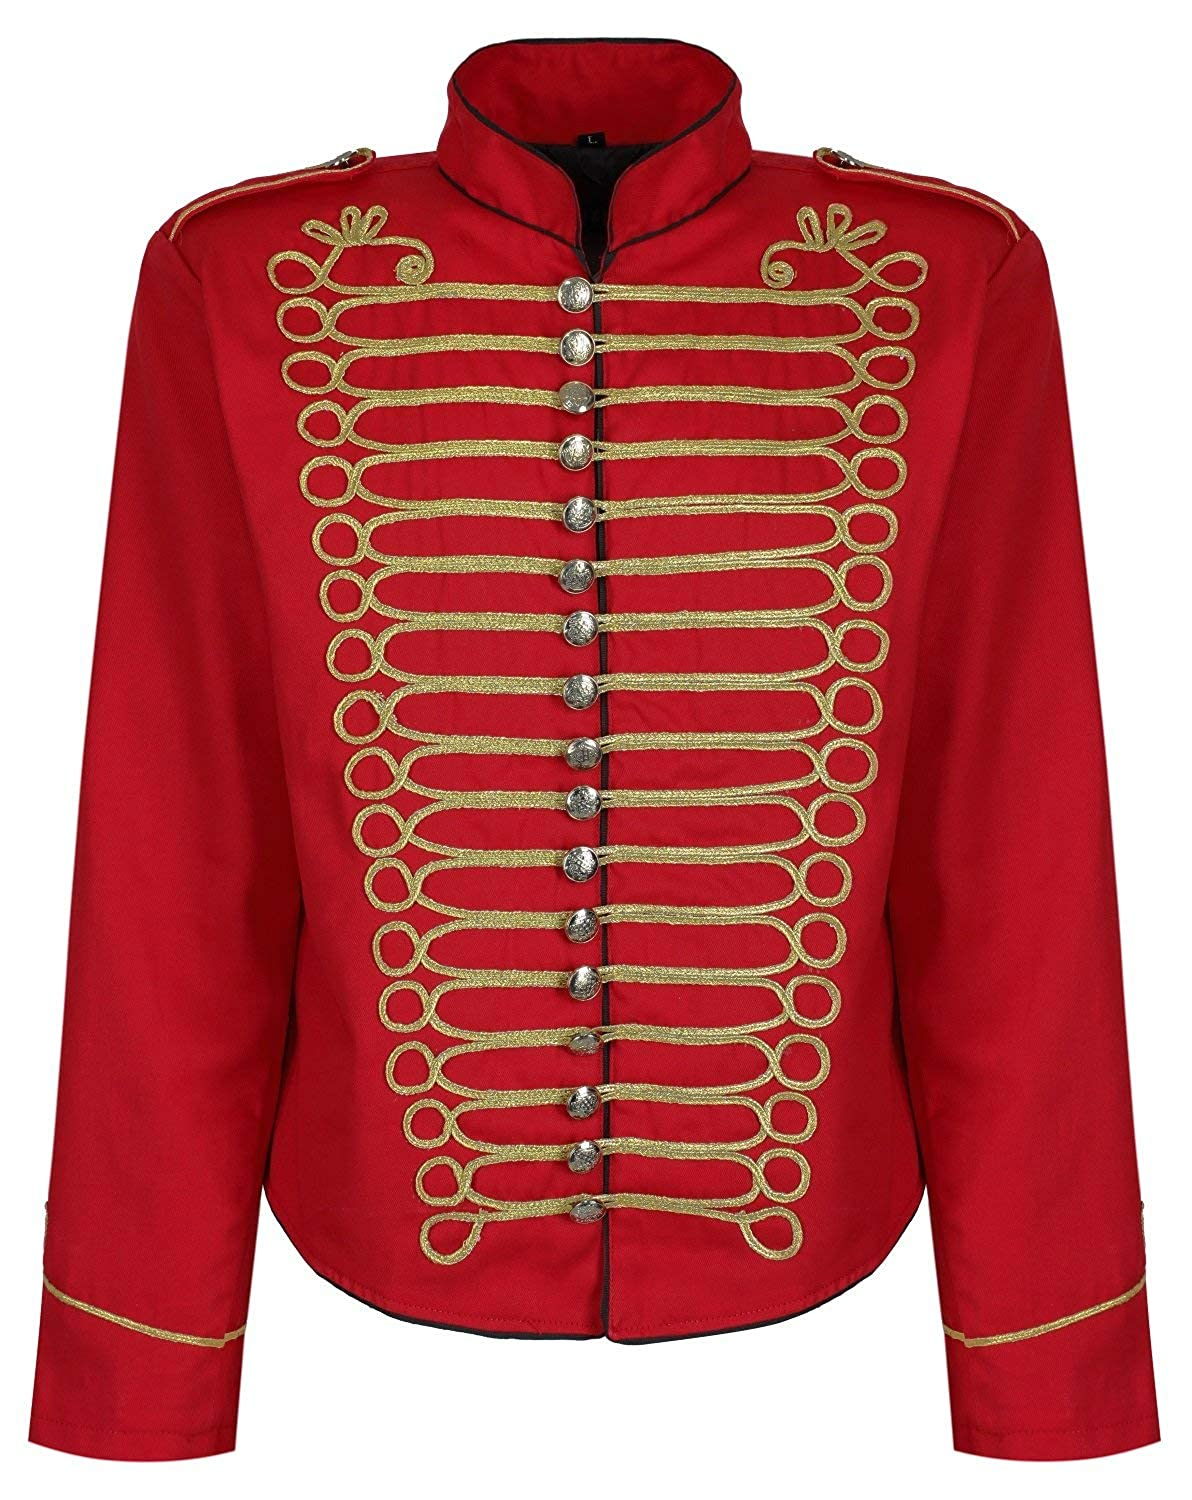 Men's Vintage Style Suits, Classic Suits Ro Rox Mens Punk Officer Military Drummer Parade Jacket $59.99 AT vintagedancer.com